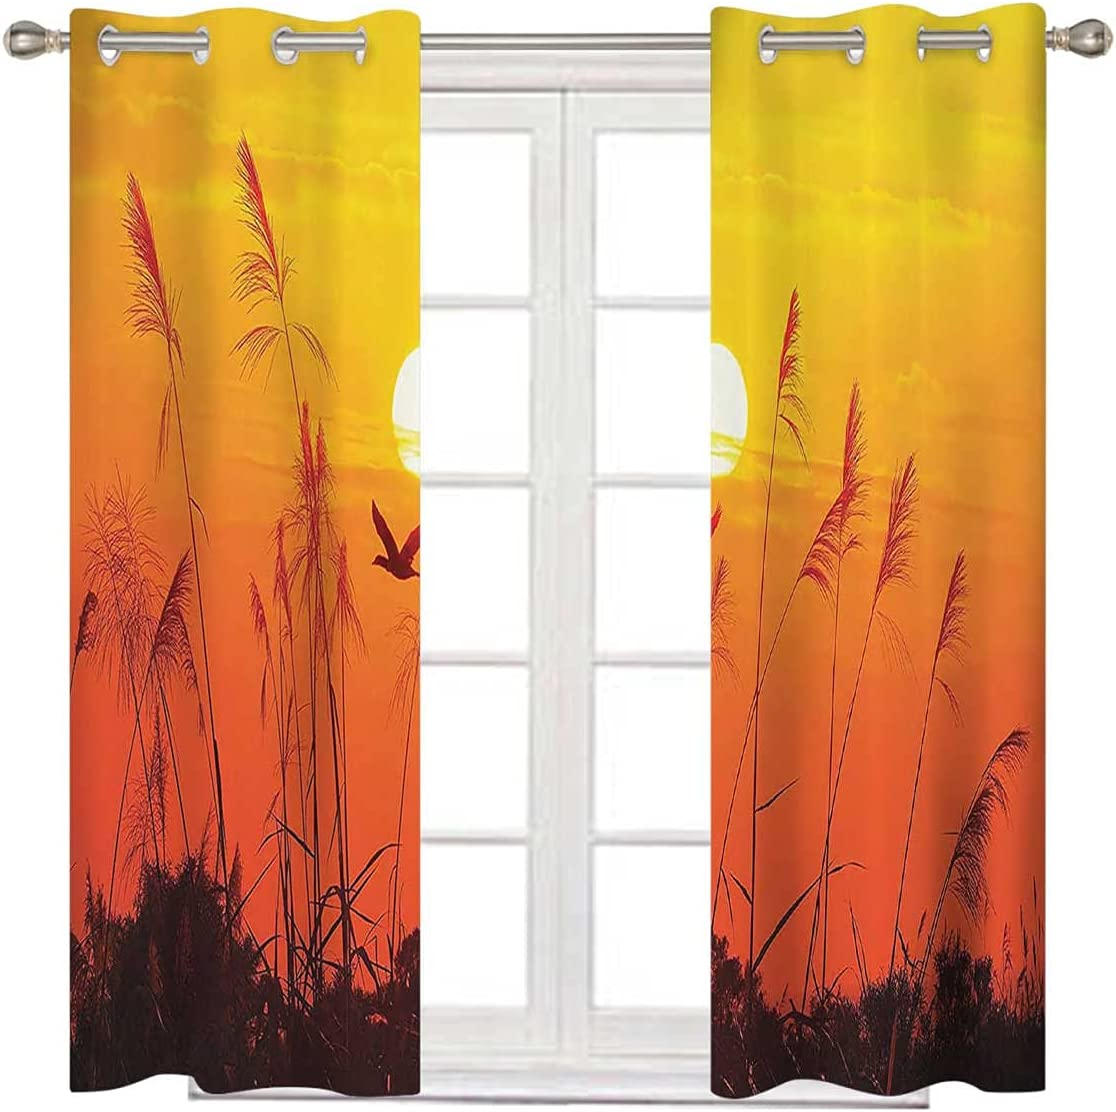 Flying Birds Decor Extra Wide Ranking TOP4 Curtain Red Yellow Panels Challenge the lowest price Pa Drape